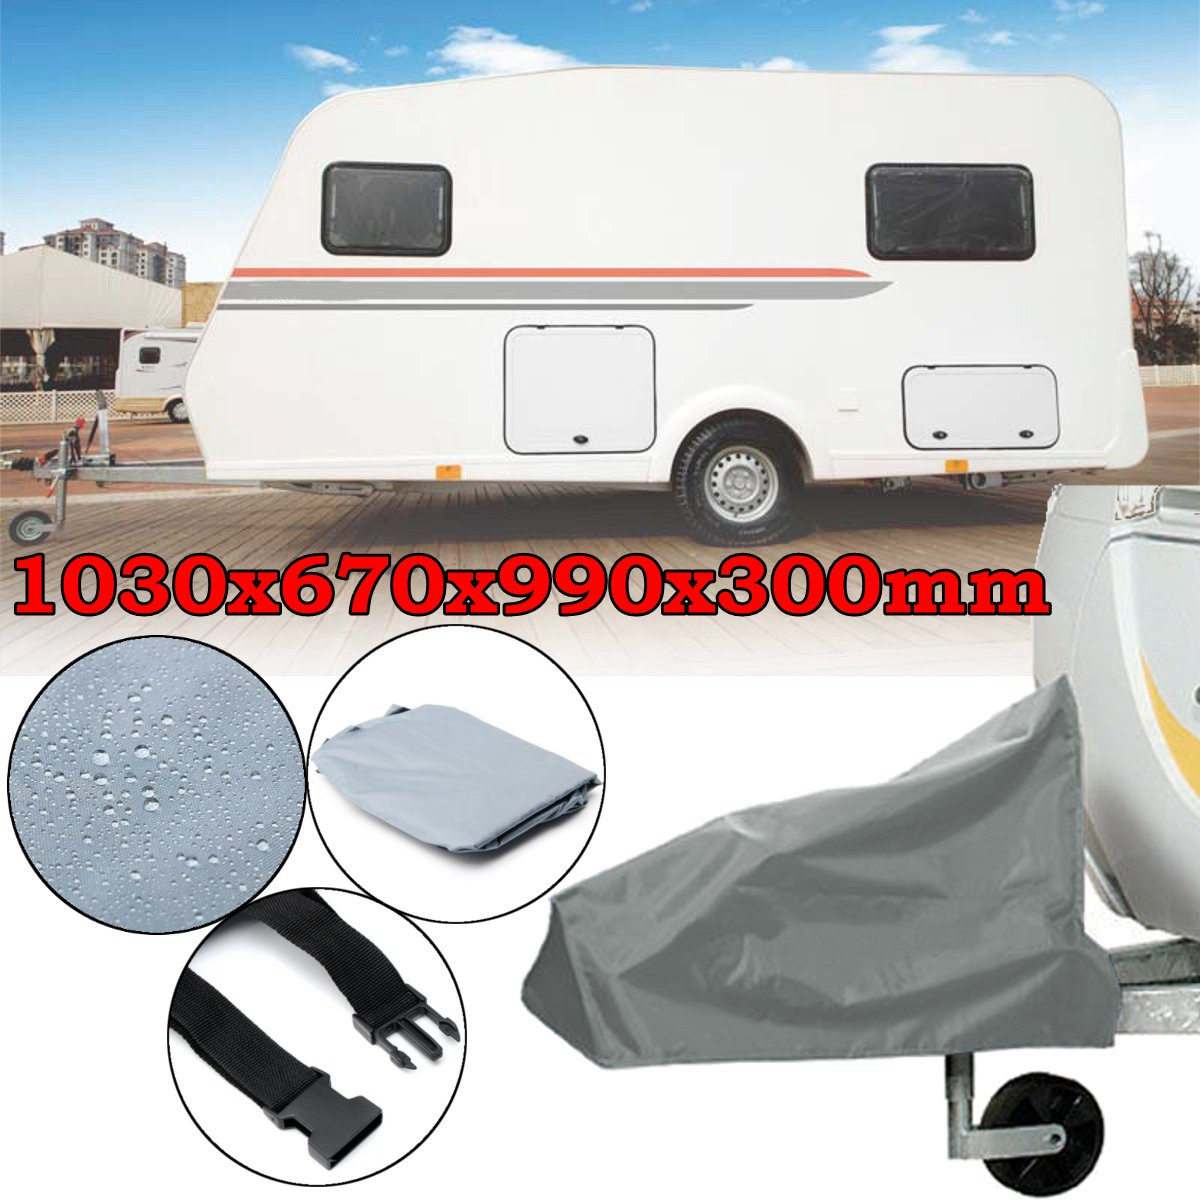 Universal Caravan Hitch Cover Waterproof Dustproof Trailer Tow Ball Coupling Lock Cover For RV